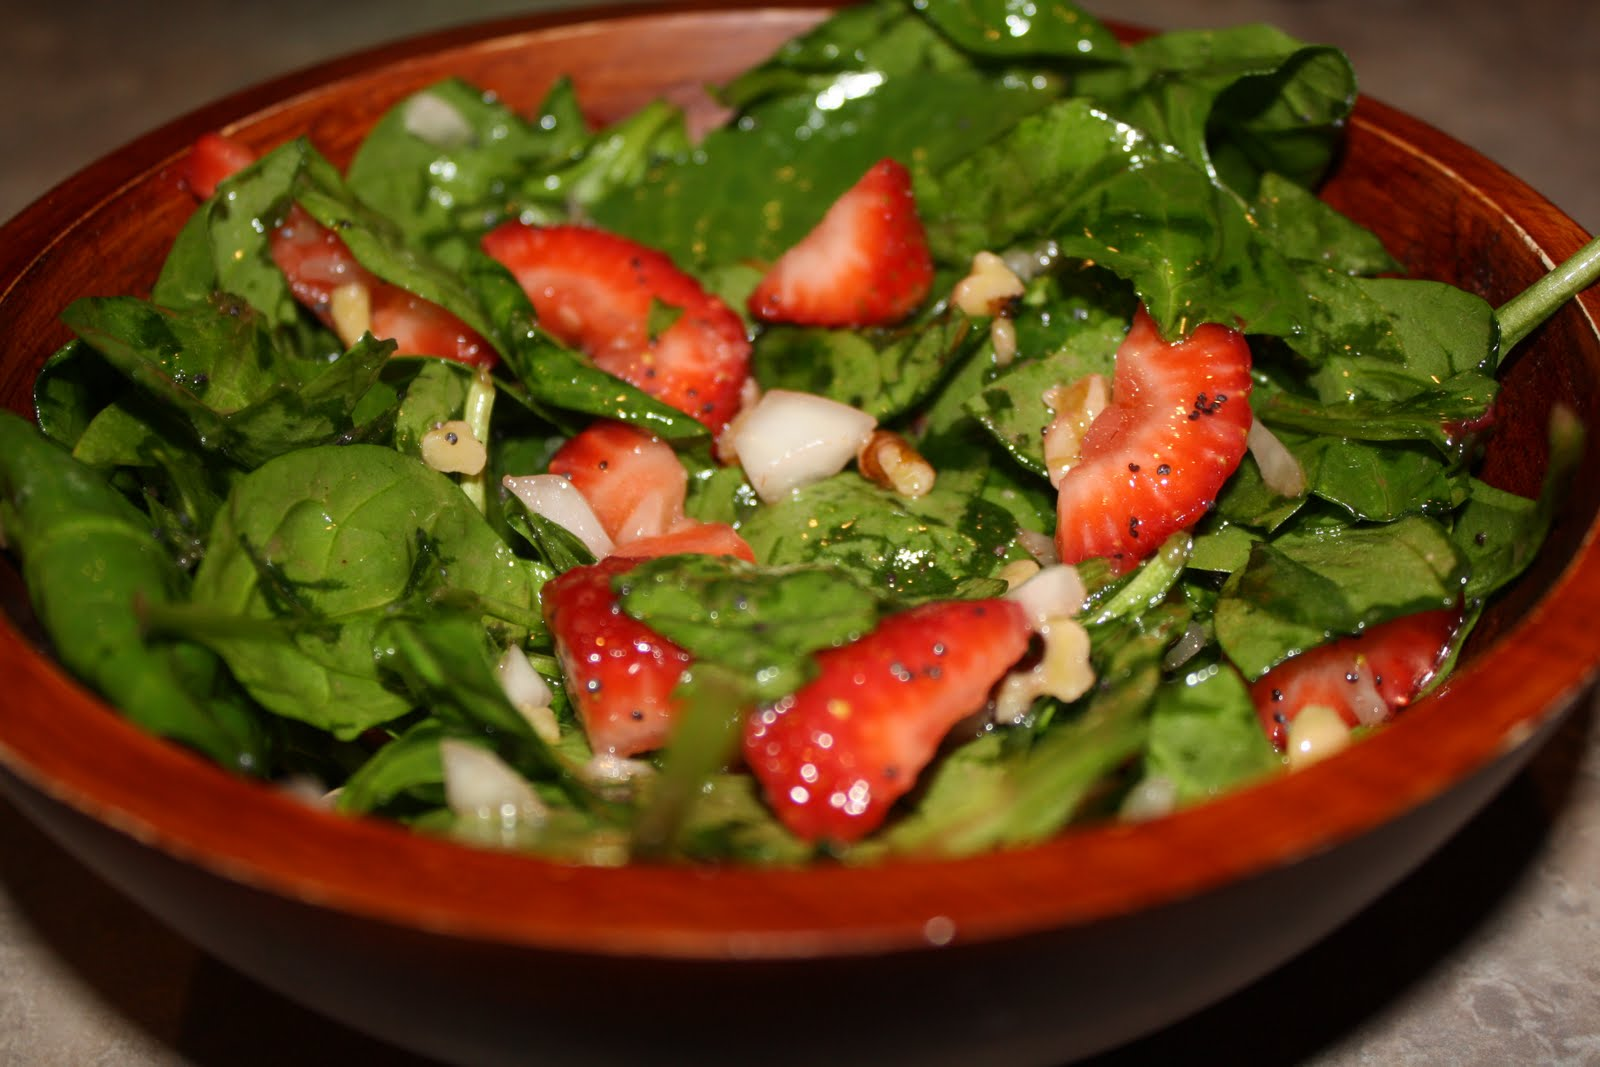 Unwritten: Spinach and Strawberry Salad